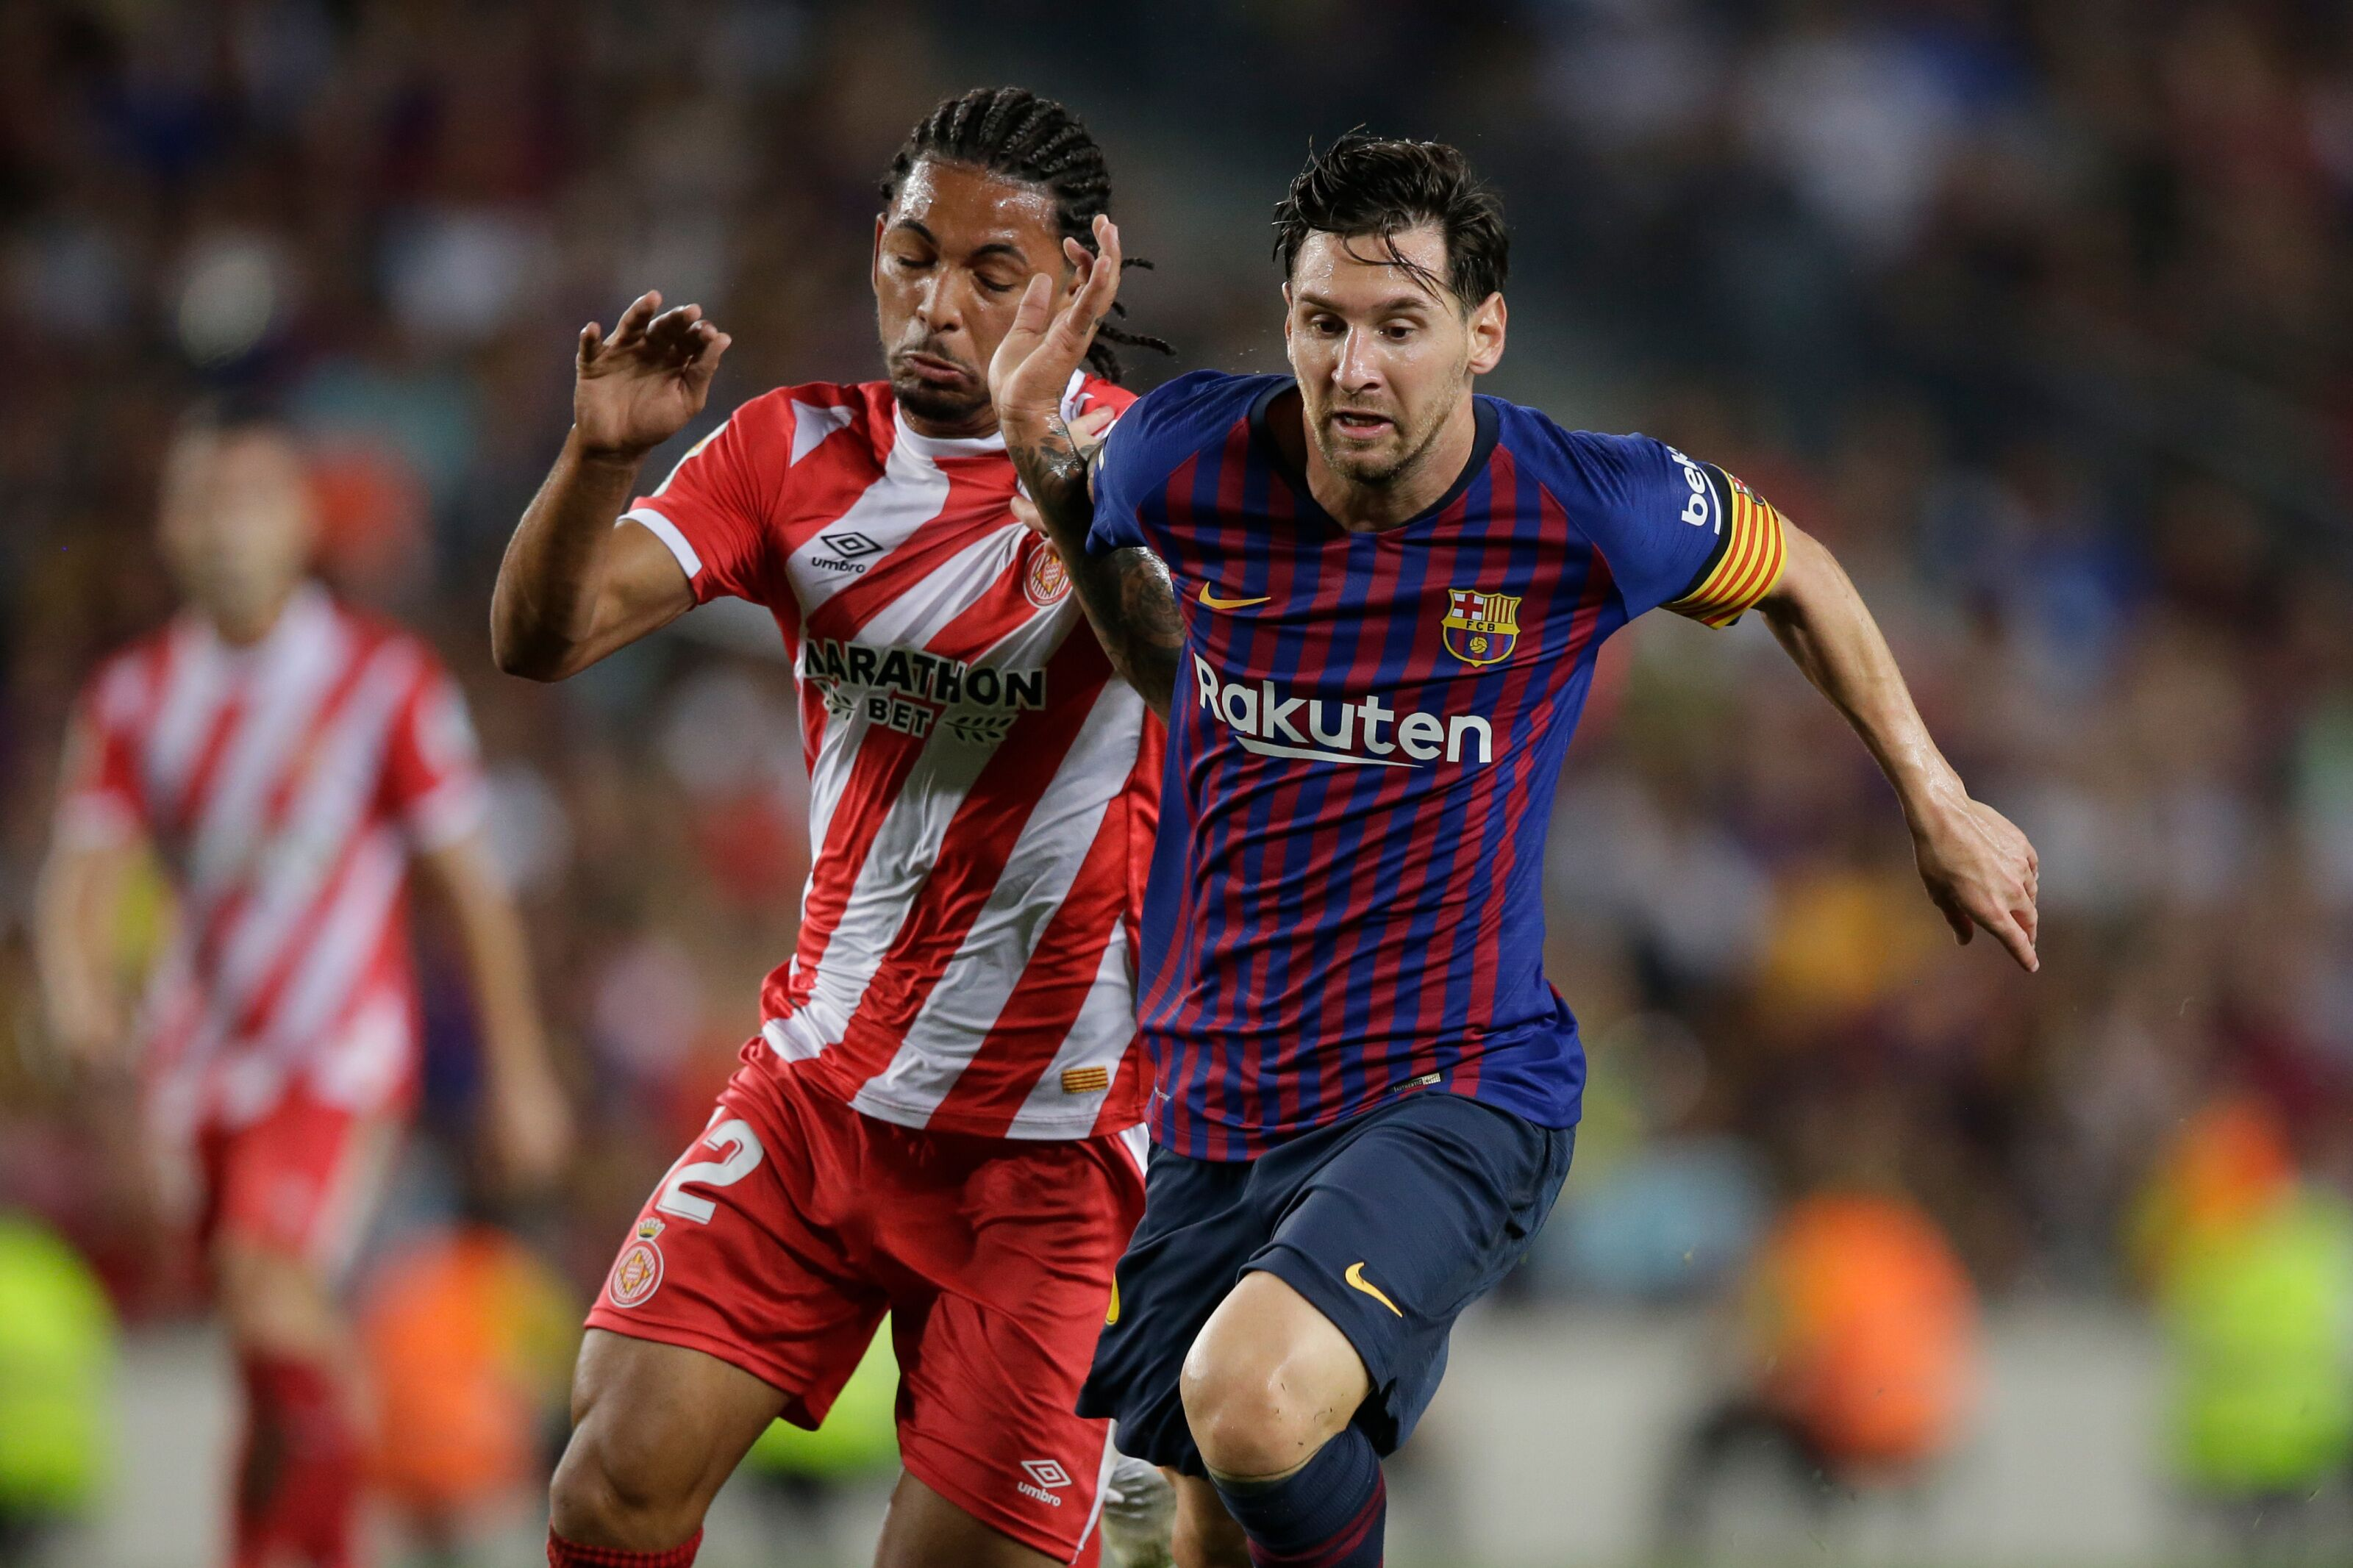 BARCELONA, SPAIN - SEPTEMBER 23: (L-R) Douglas of Girona, Lionel Messi of FC Barcelona during the La Liga Santander match between FC Barcelona v Girona at the Camp Nou on September 23, 2018 in Barcelona Spain (Photo by Jeroen Meuwsen/Soccrates/Getty Images)